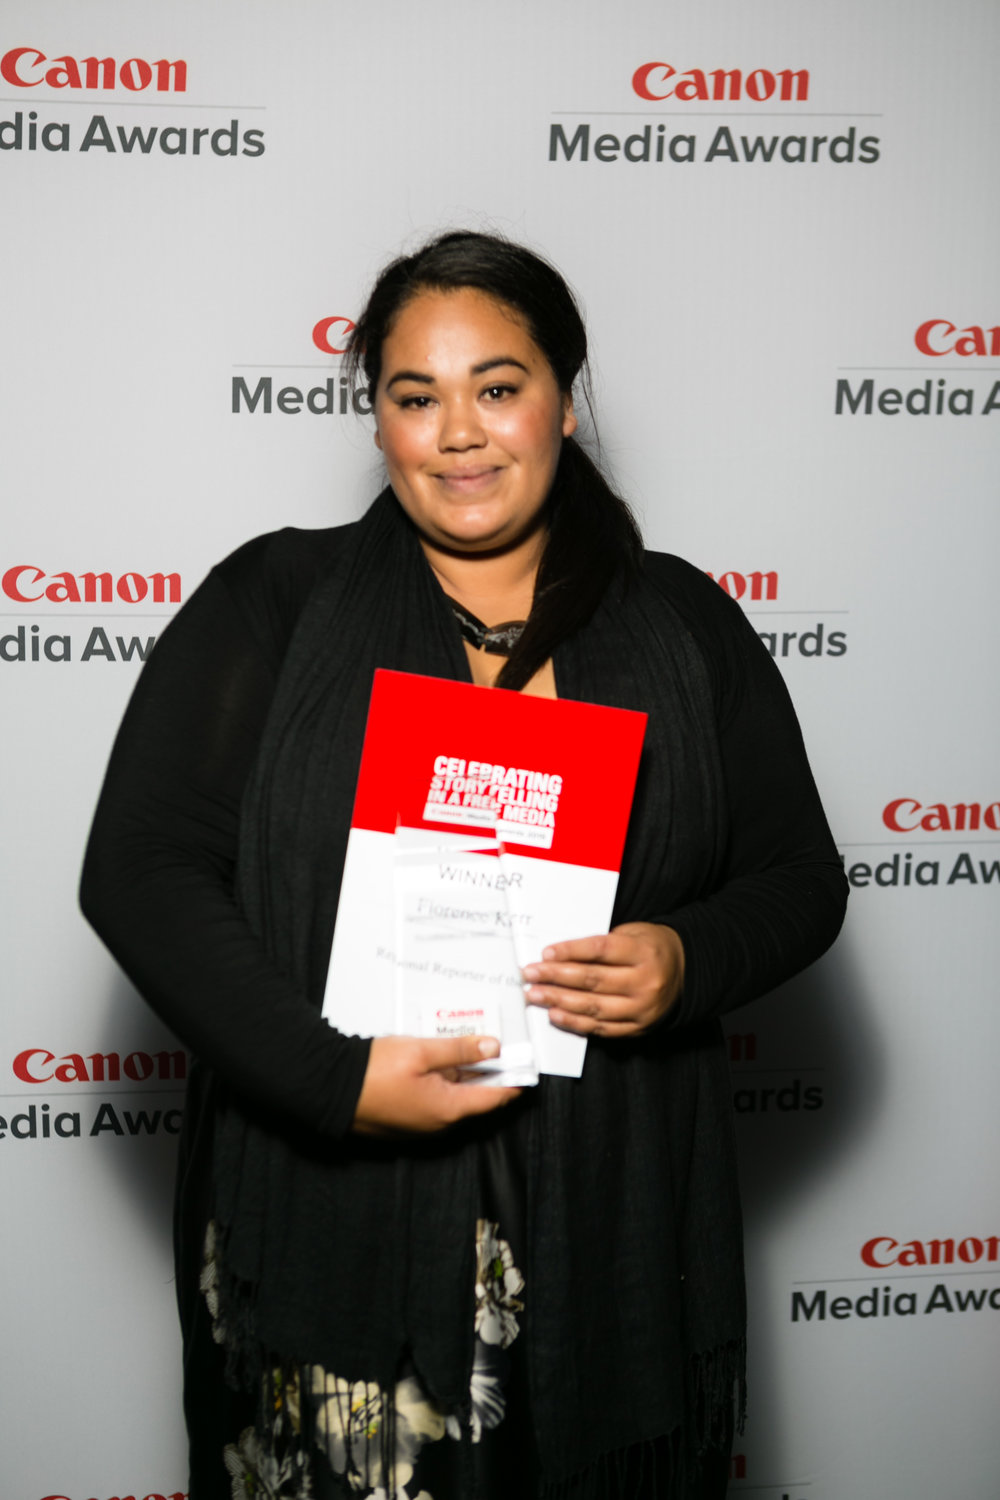 canon_media_awards_2015_interlike_nz_clinton_tudor-5935-191.jpg